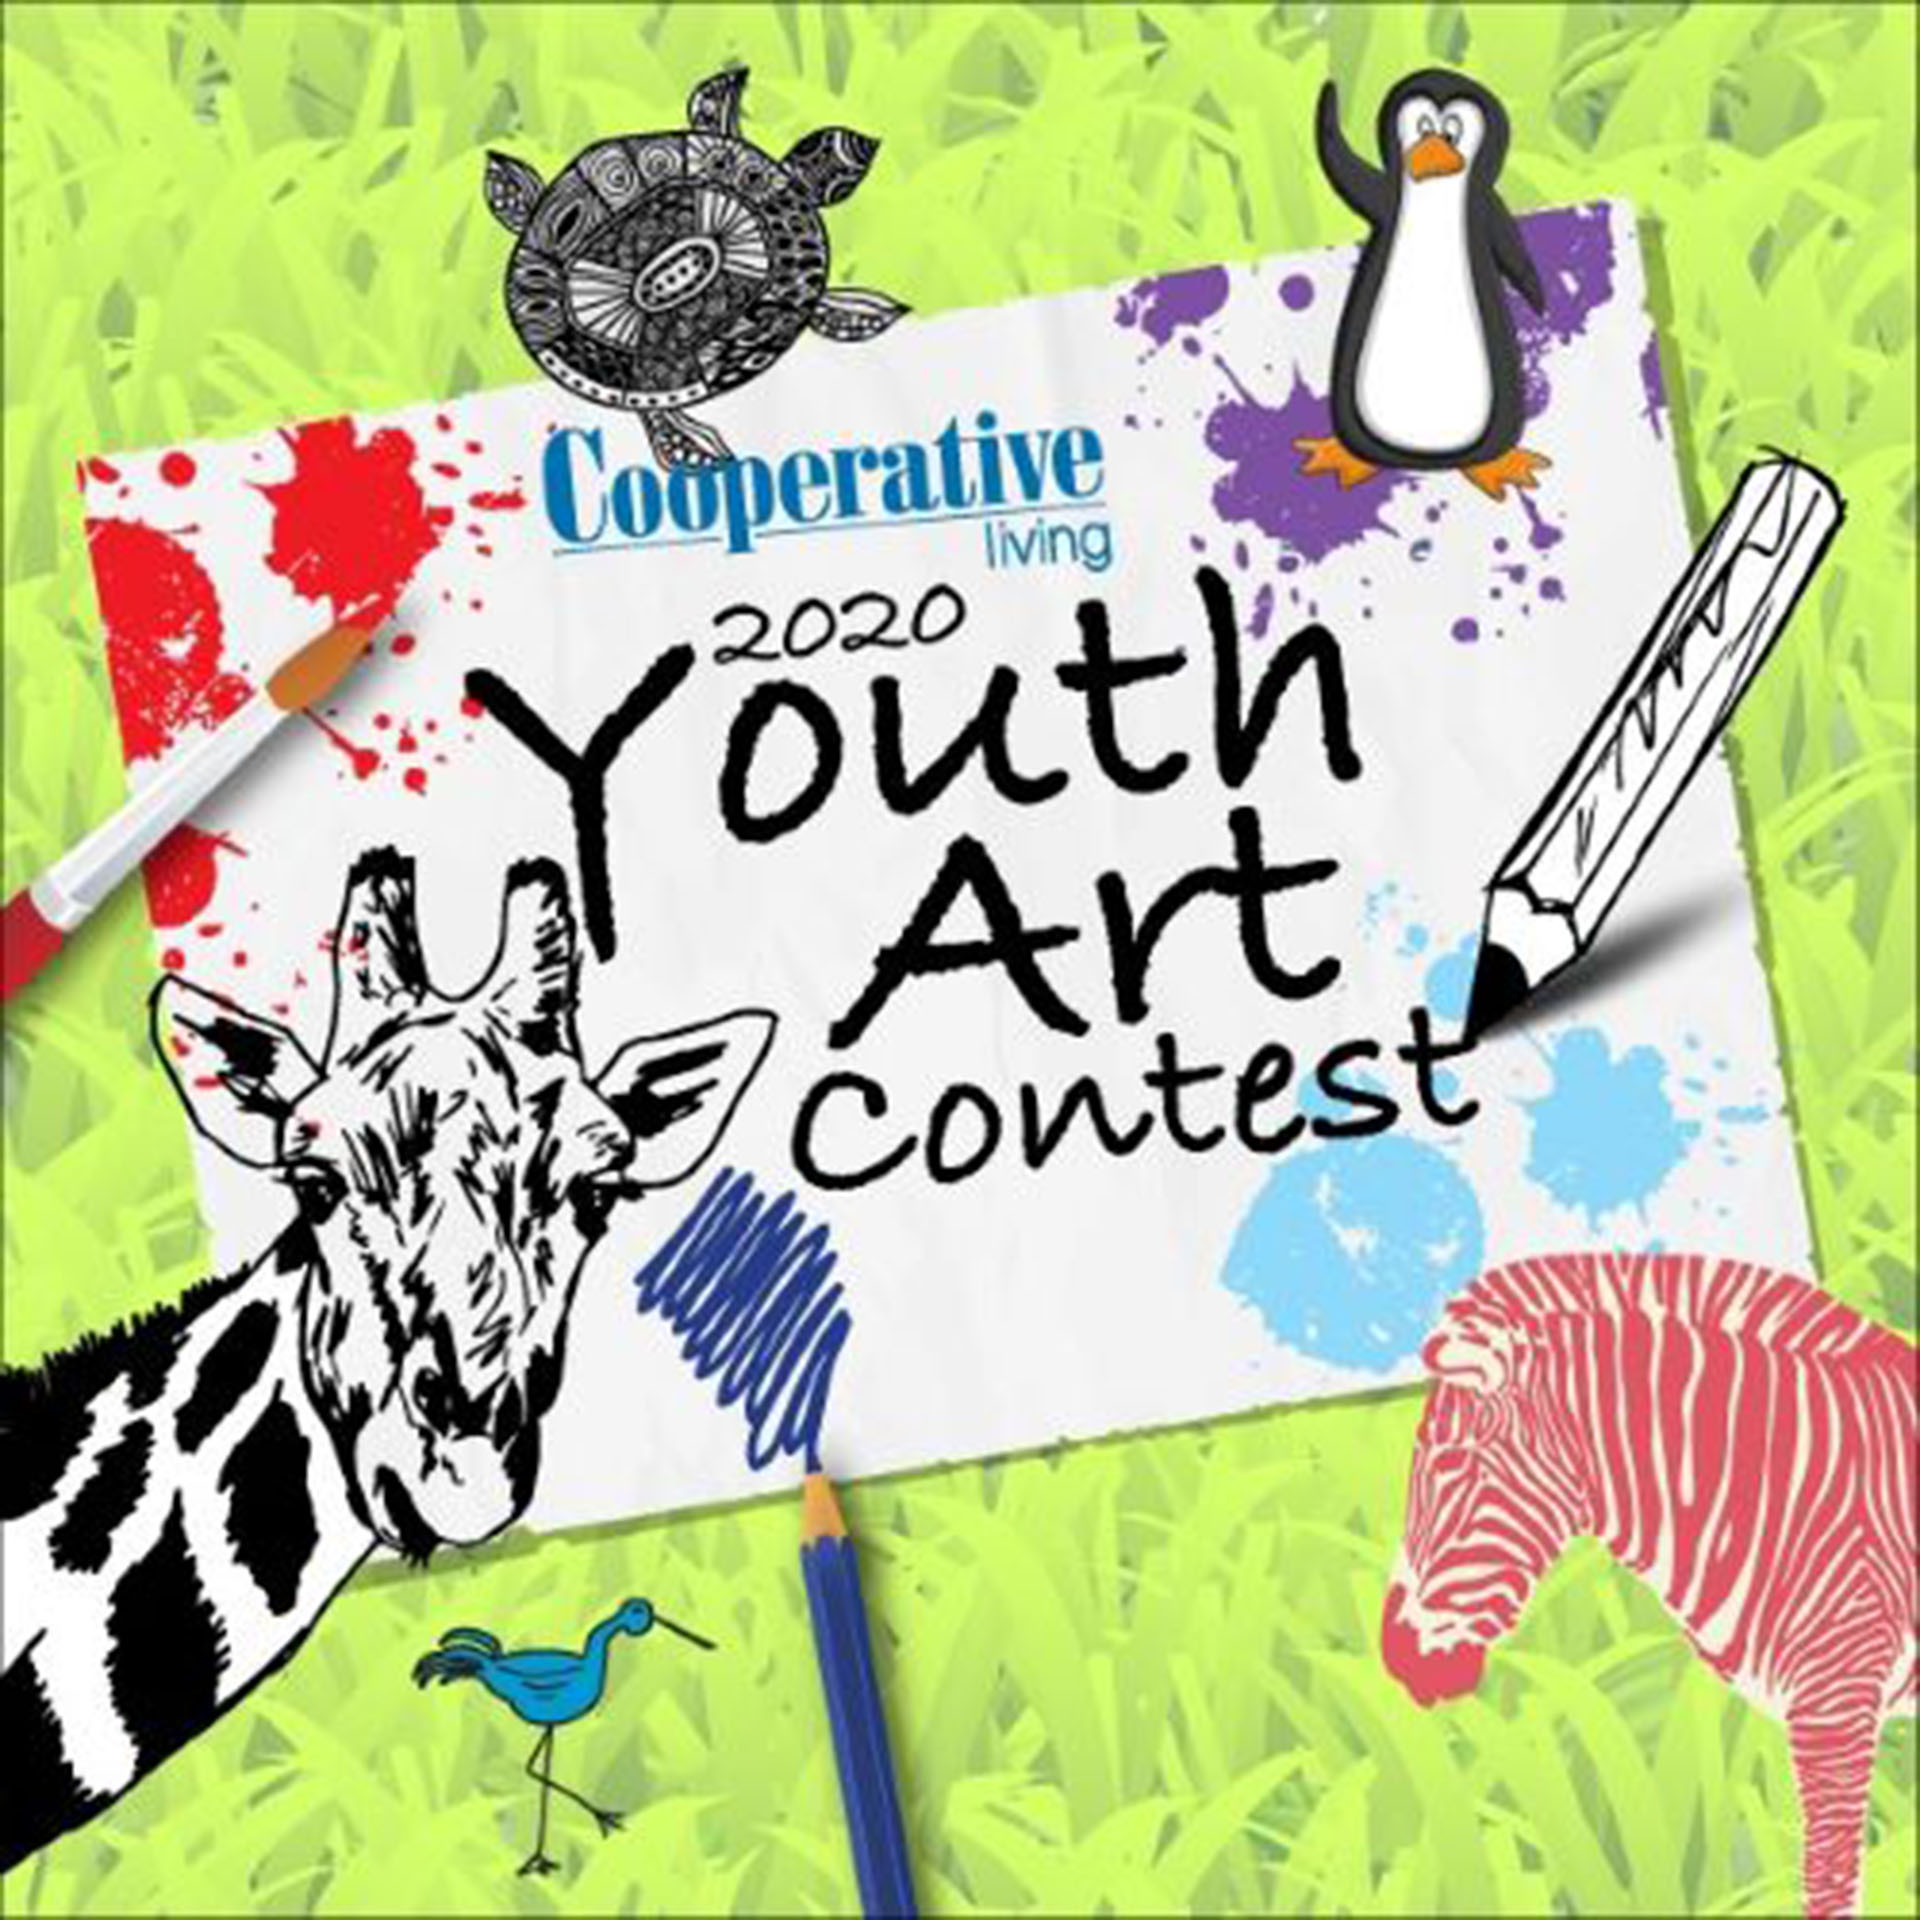 Youth Art Contest entries due May 4